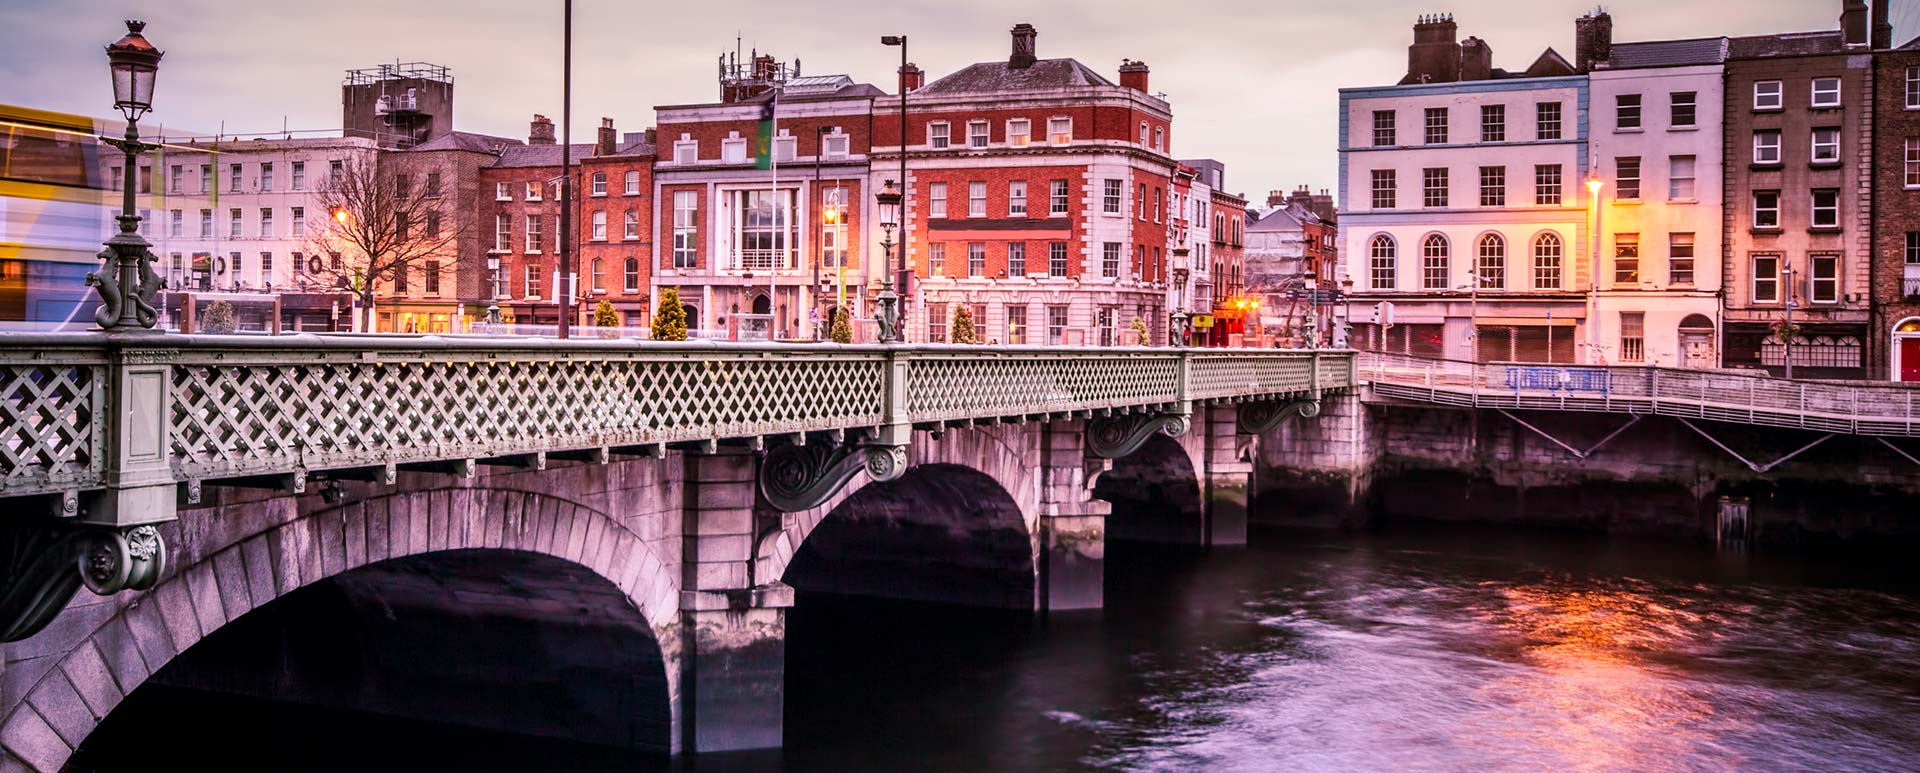 Discounted flight tickets to Ireland - IFlyFirstClass